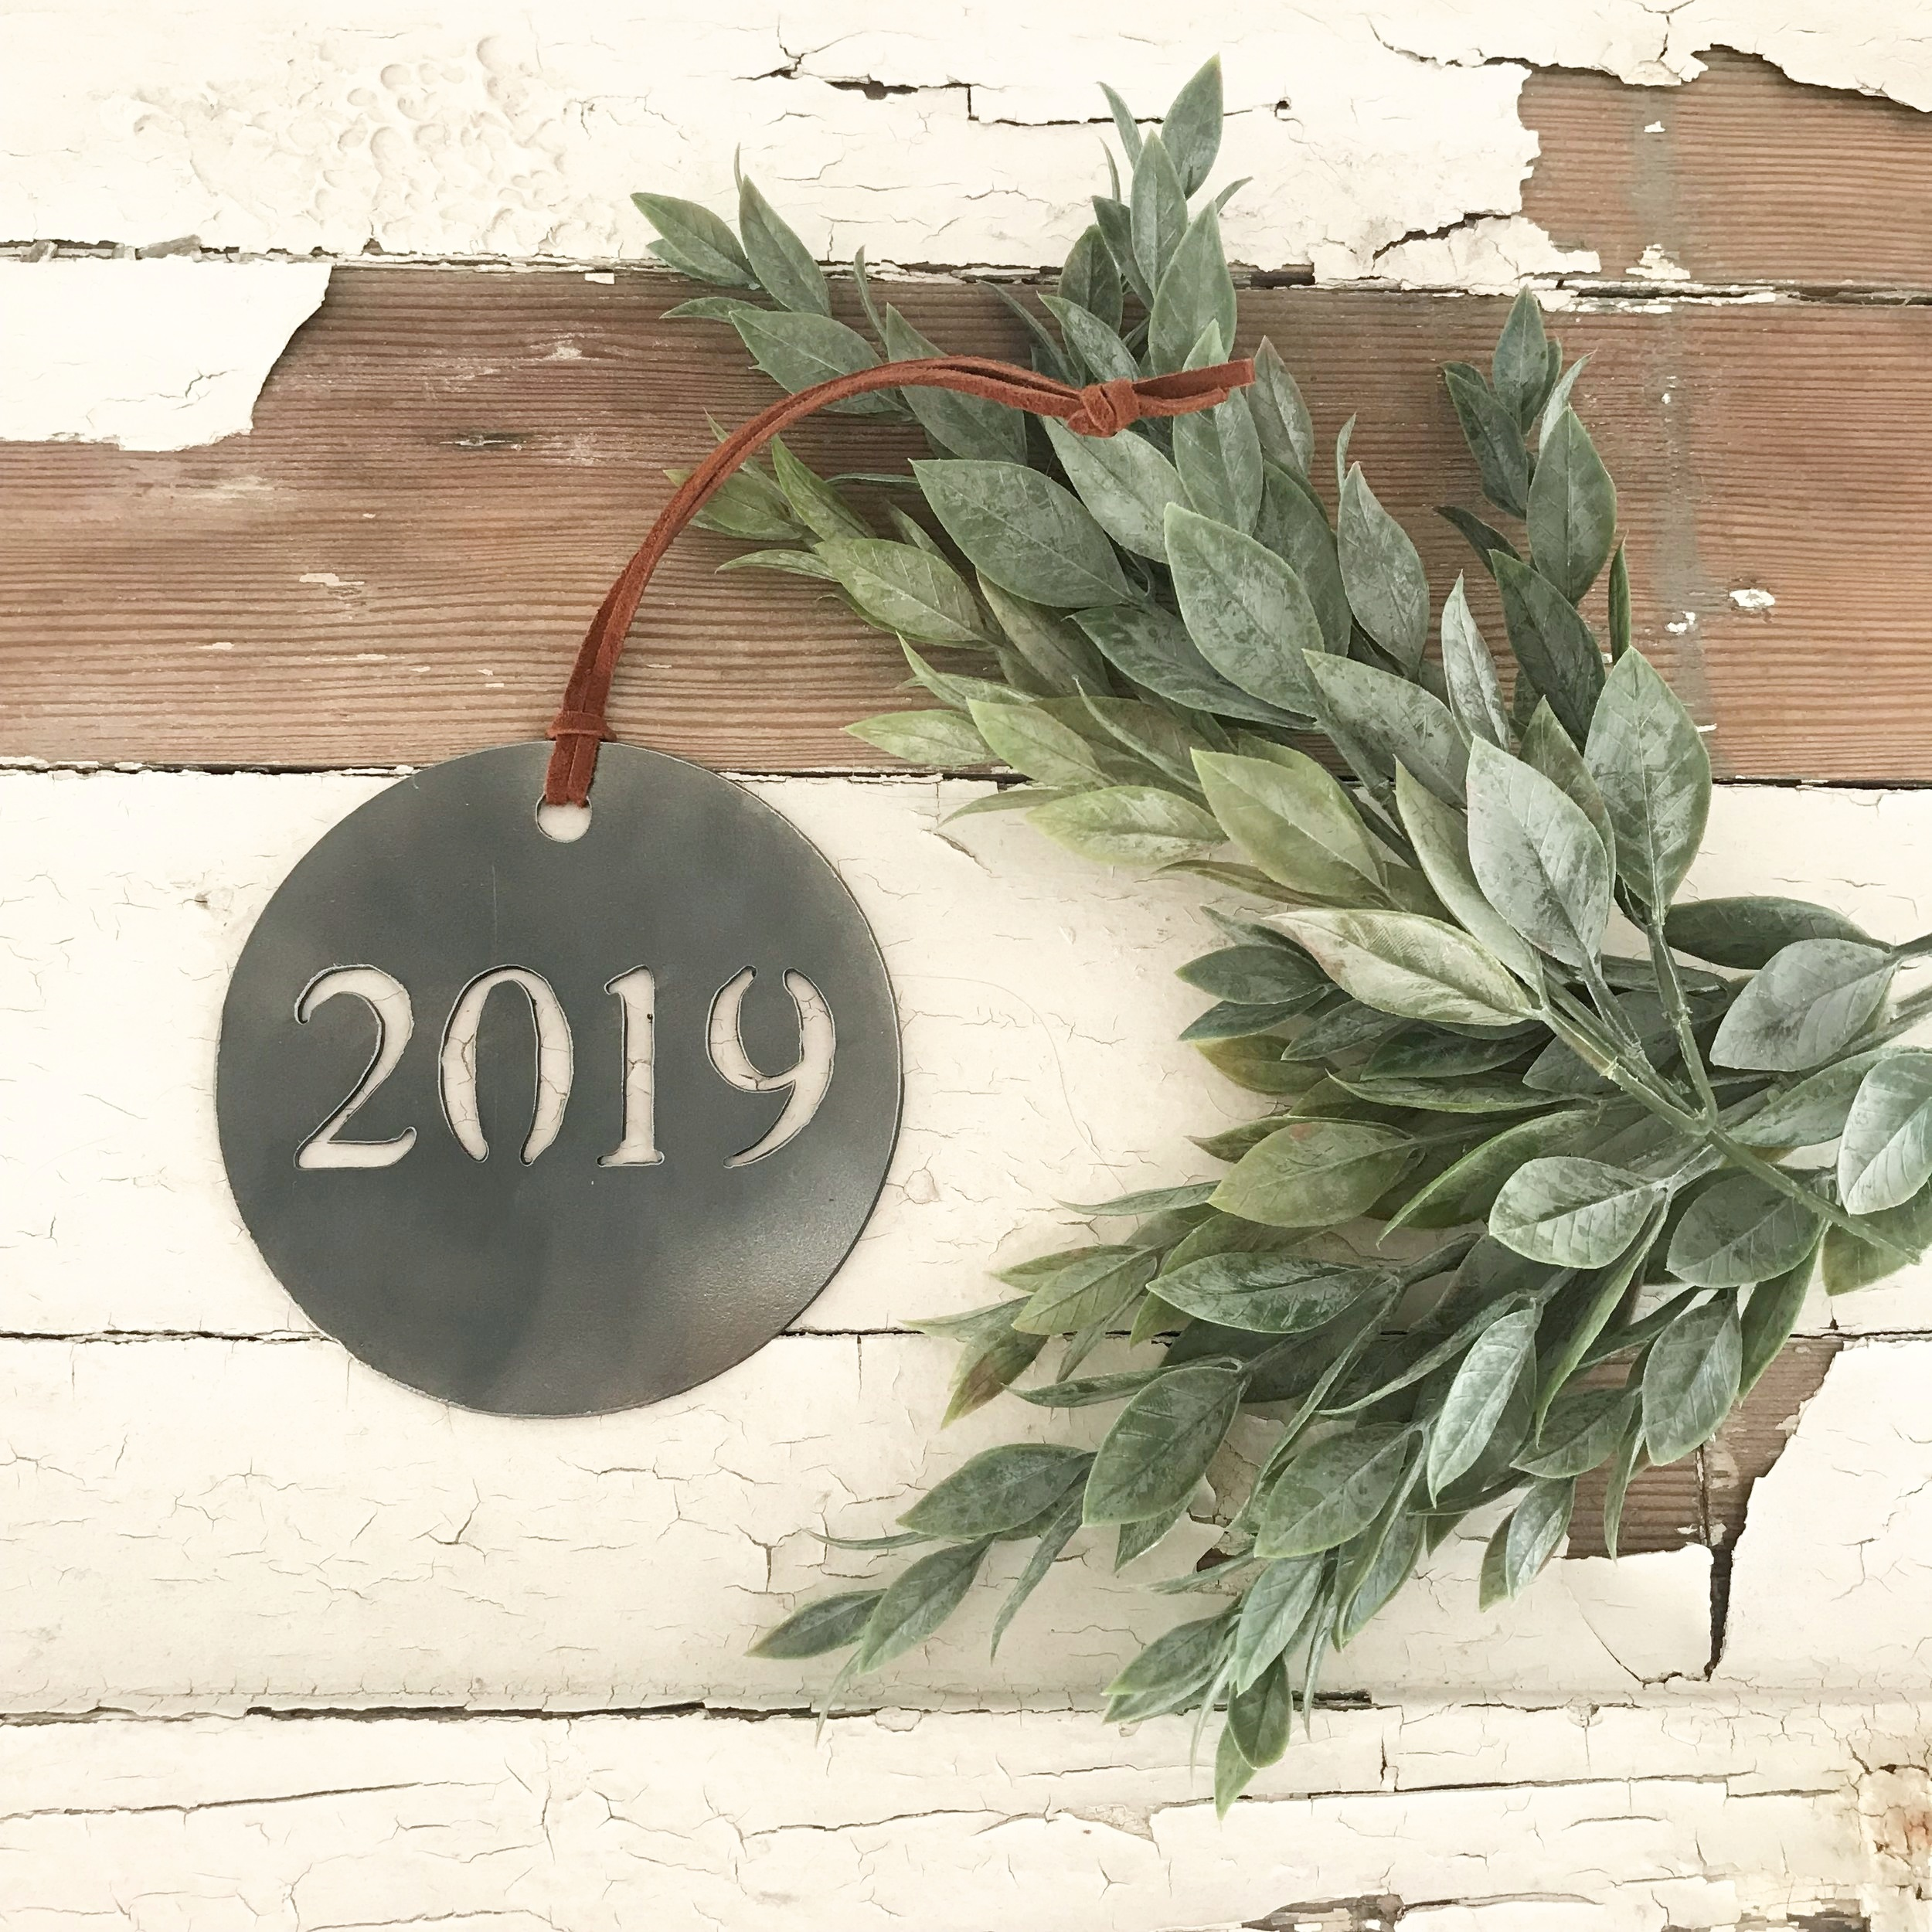 Sweet and universal. An annual ornament to mark a year of your history. Find the  2019 Ornament  here.